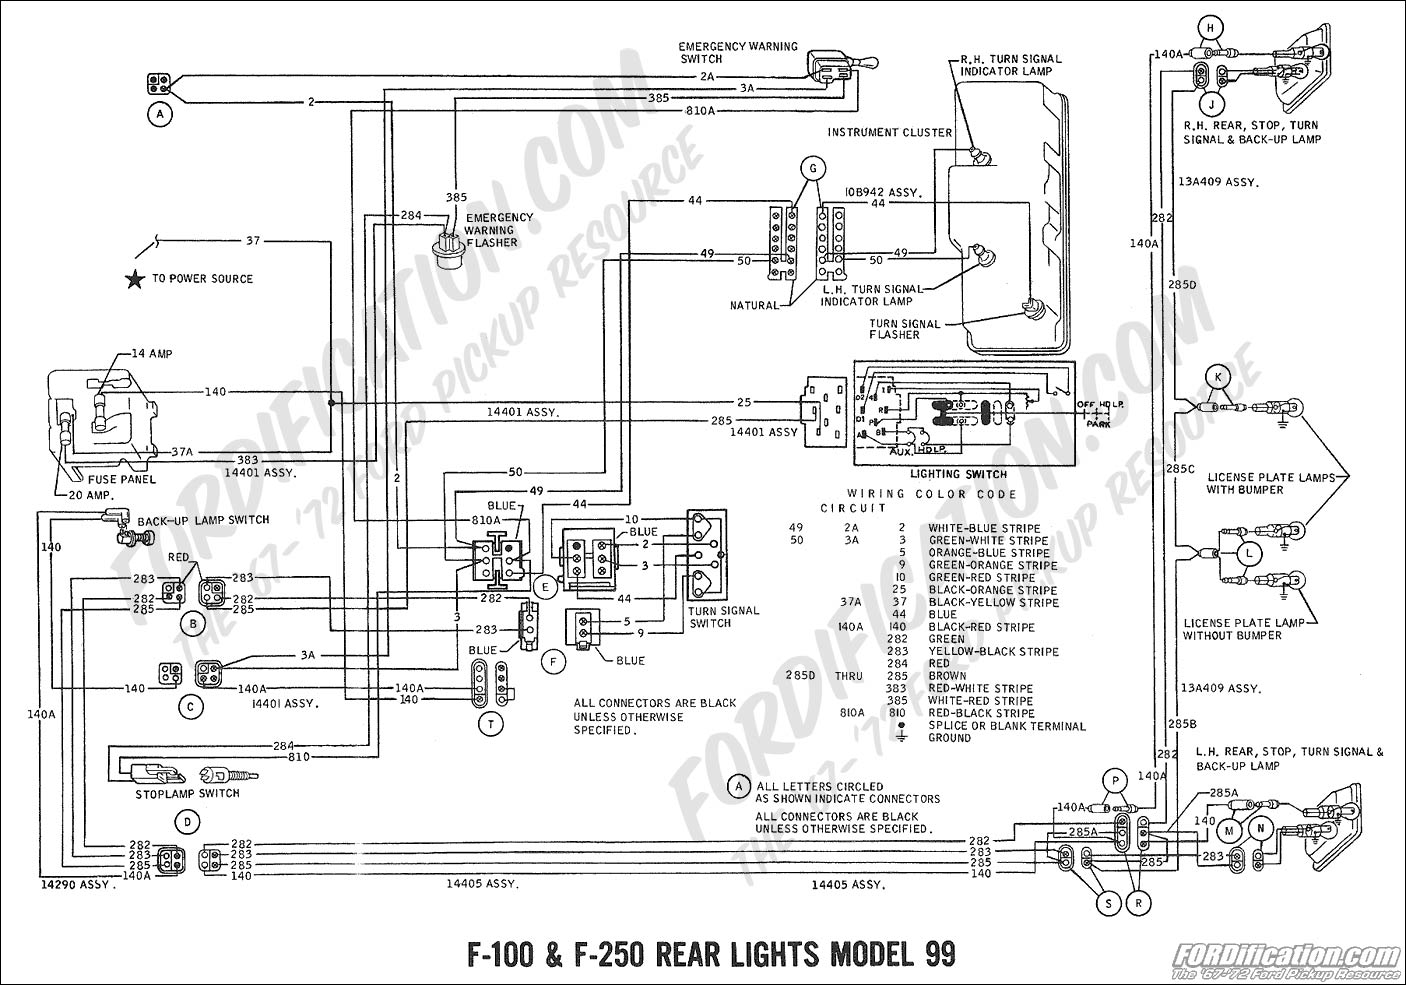 1971 ford ltd wiring diagram